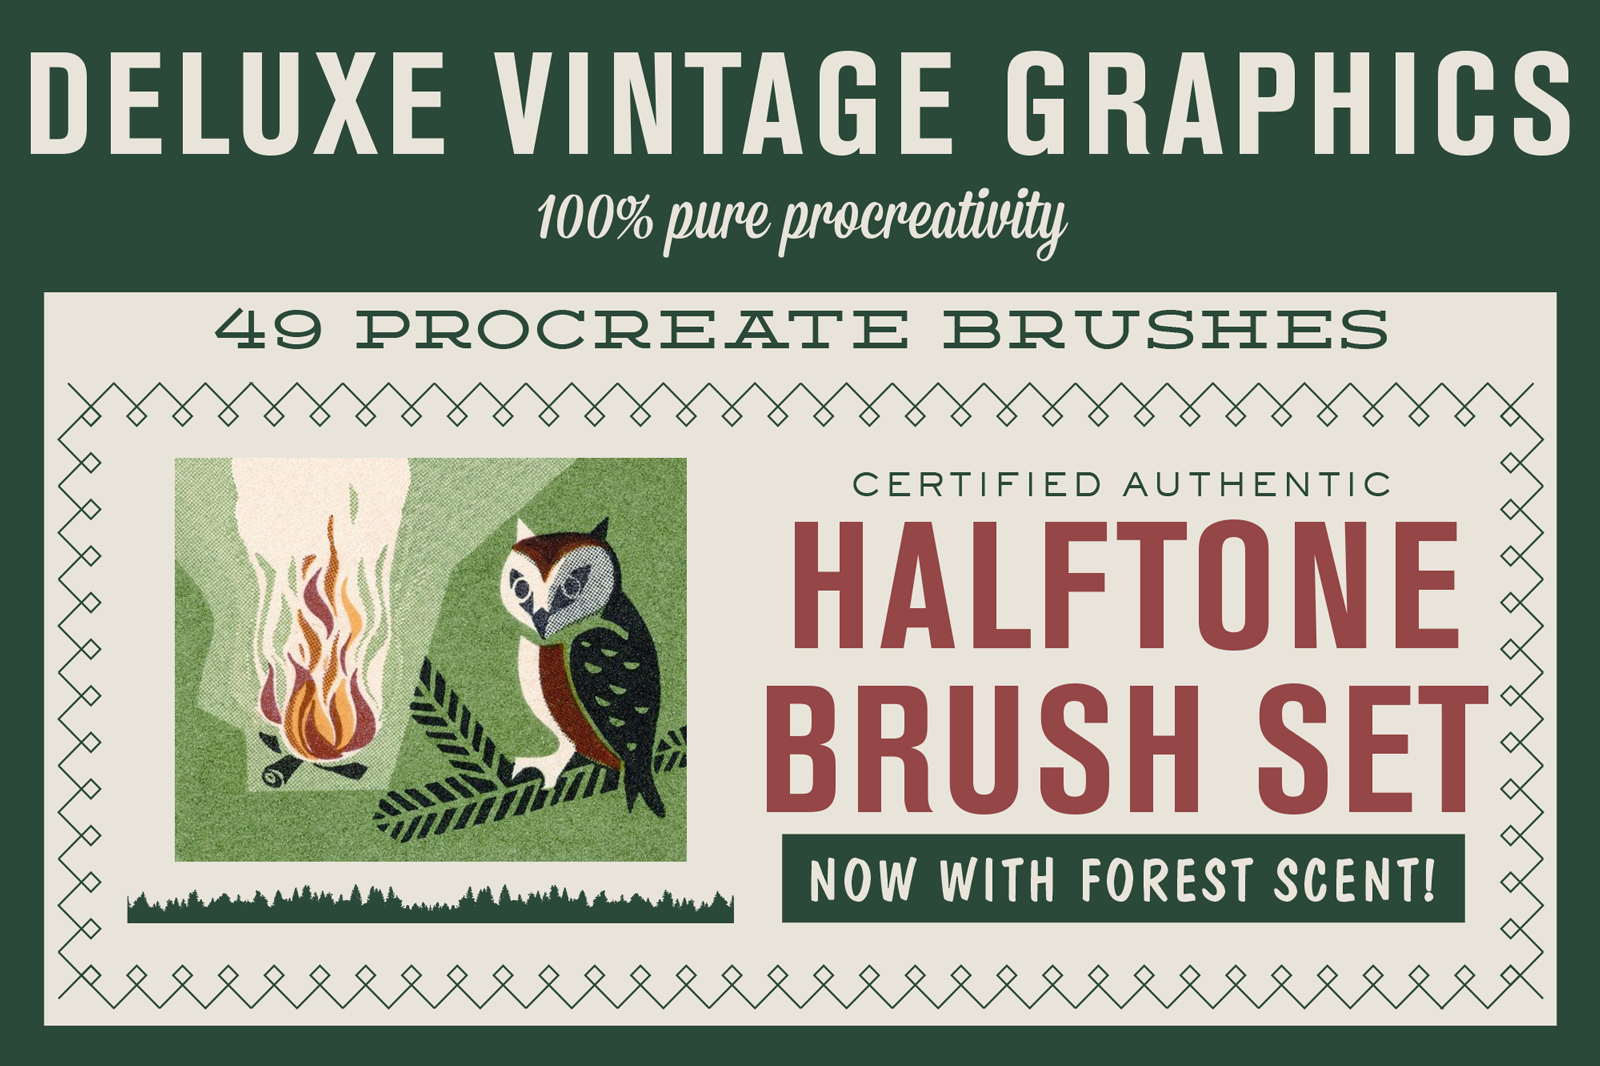 Vintage halftone brushes for Procreate